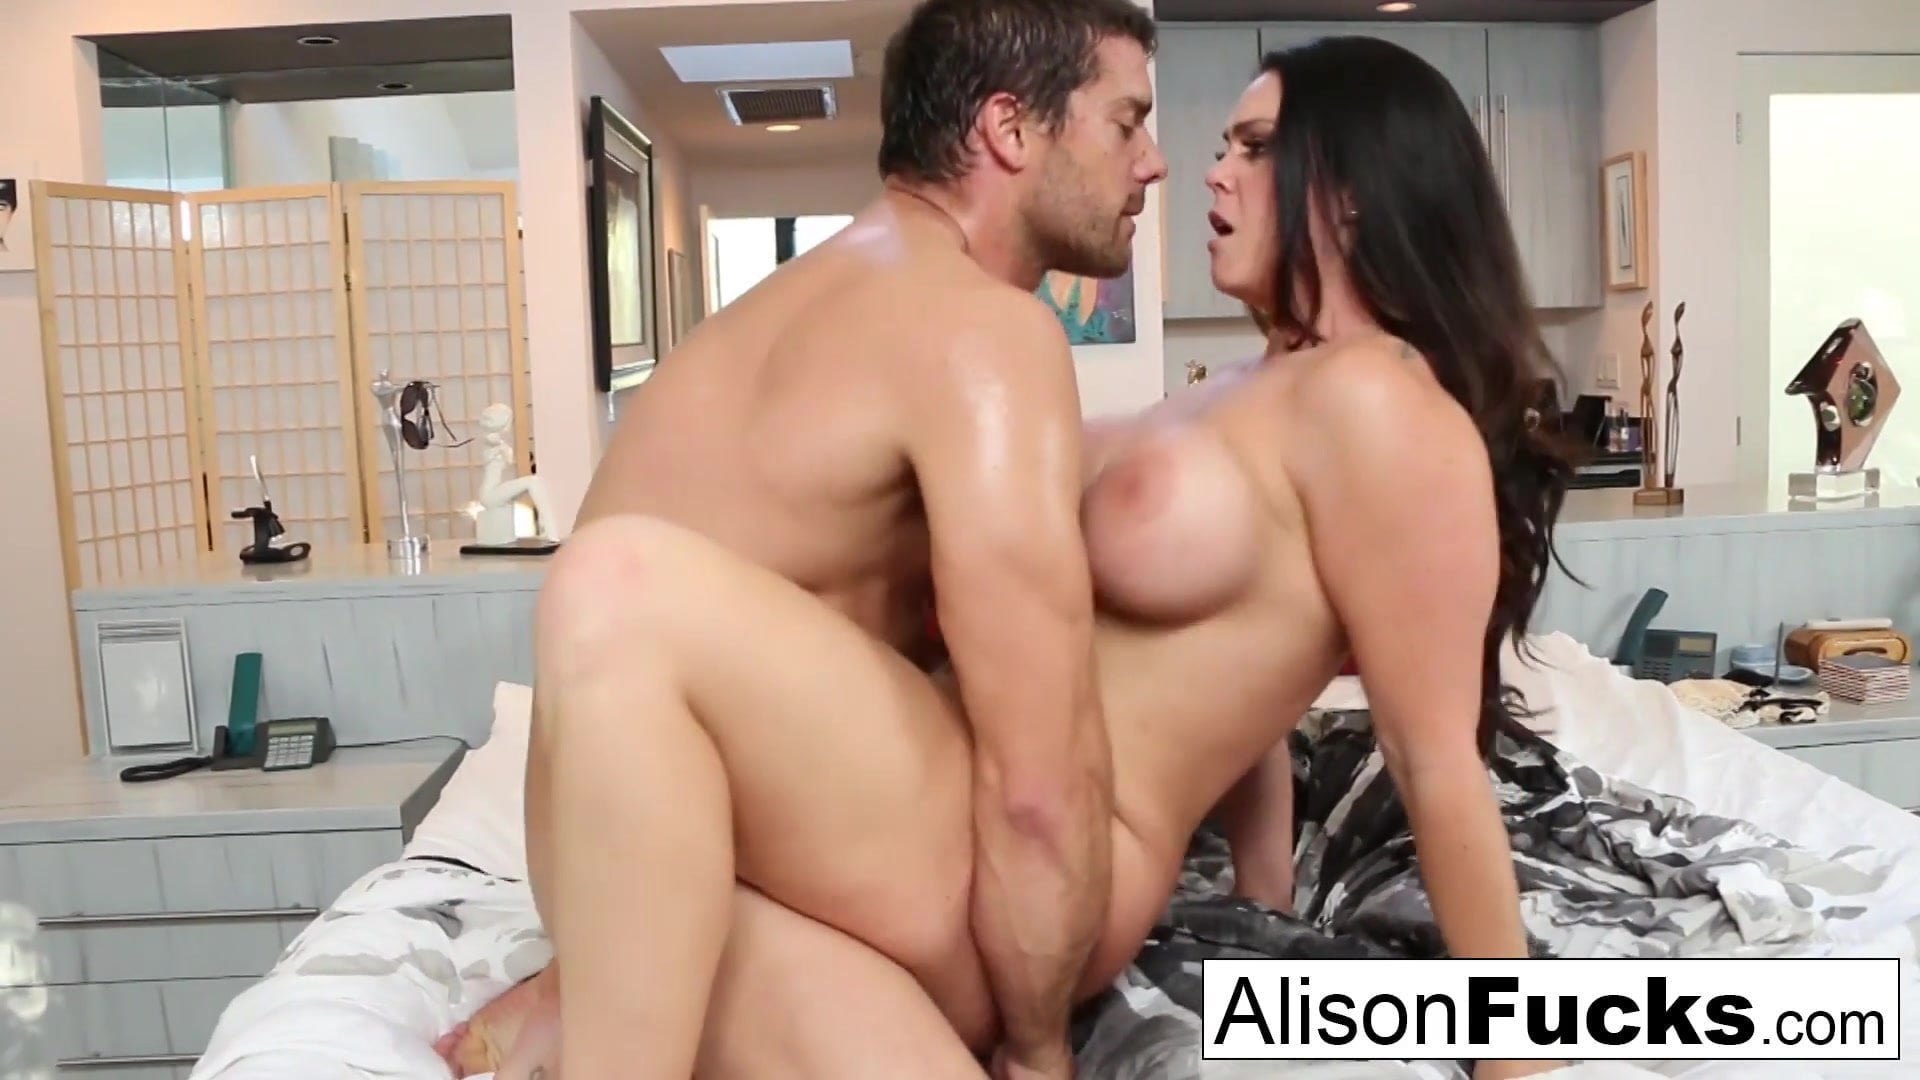 Allison Sex Video amazing rough fuck with alison tyler and a hung spanish stud